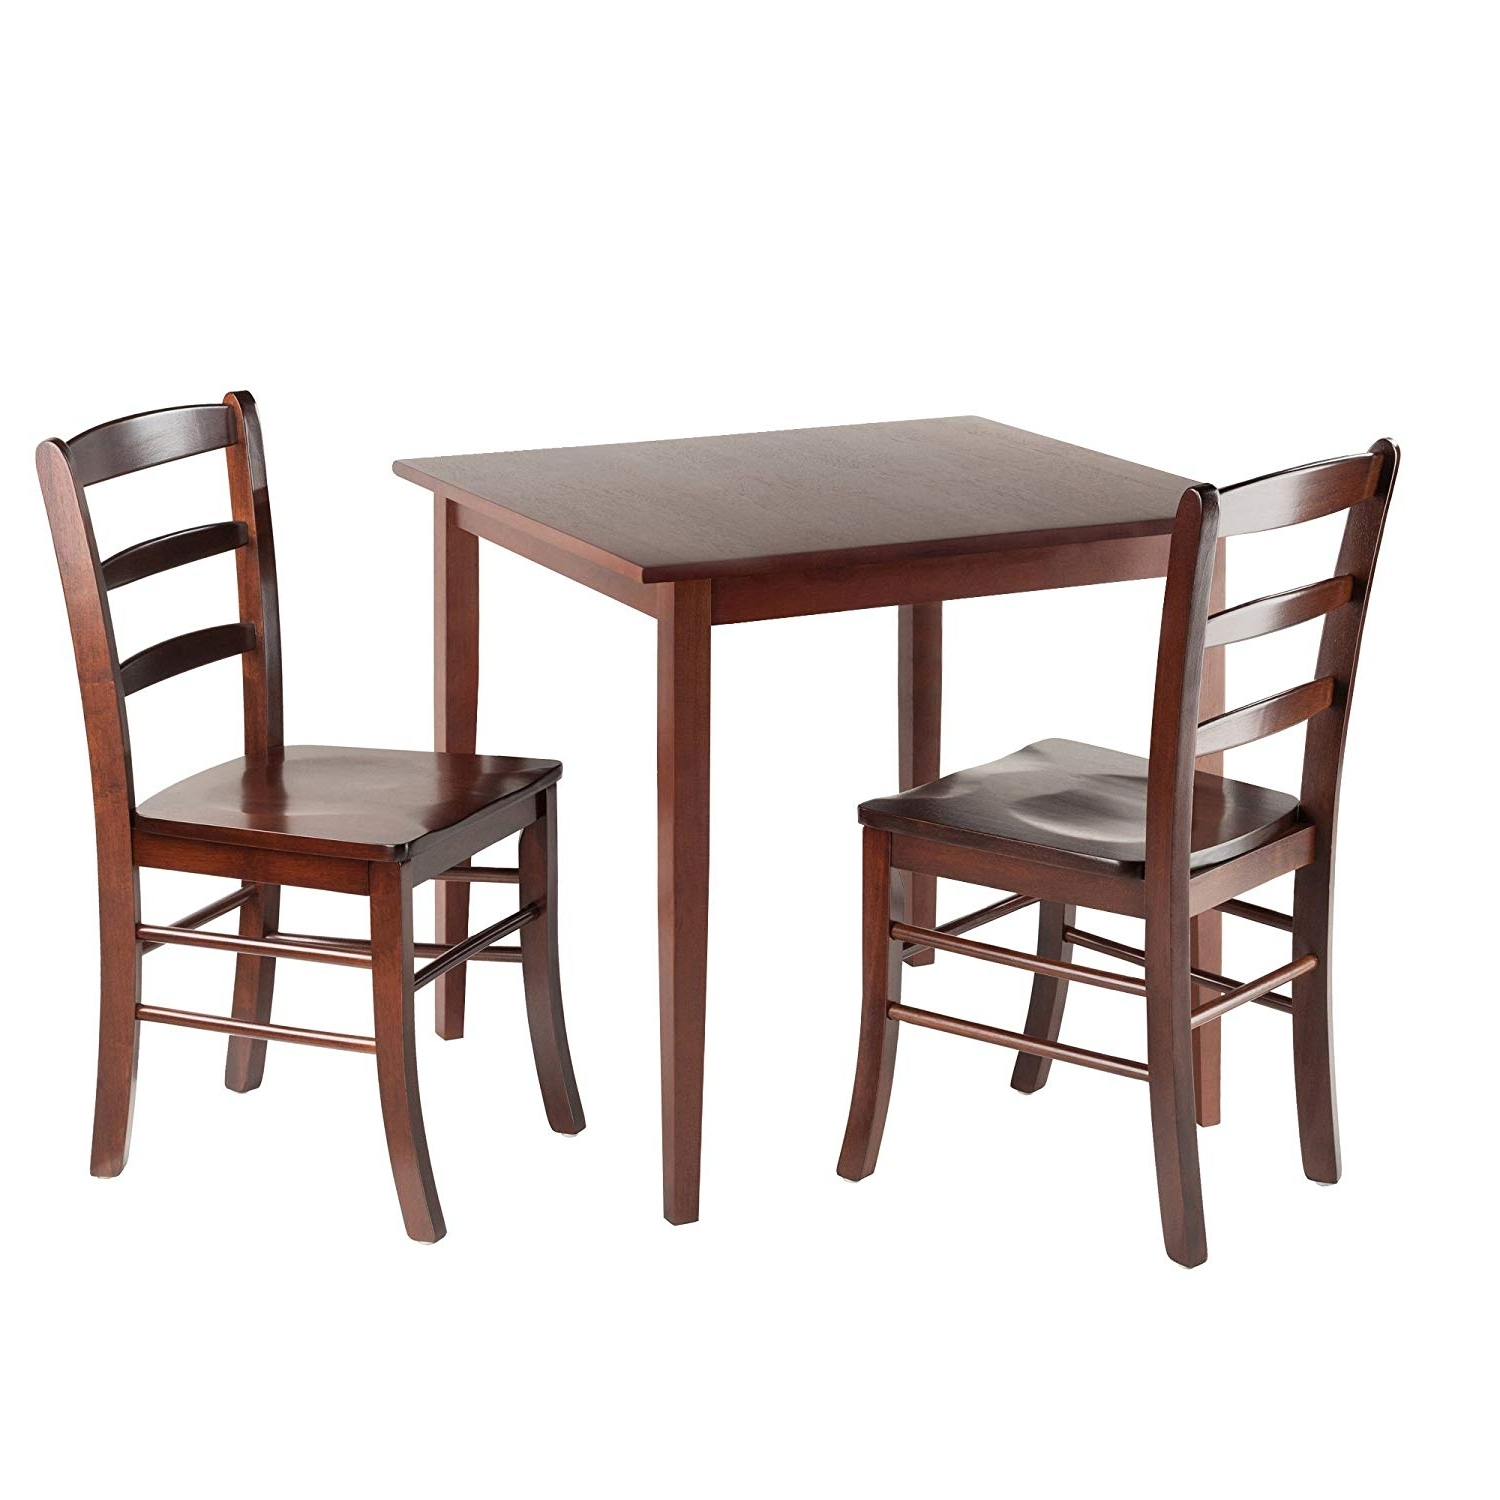 Favorite Light Oak Dining Tables And Chairs Inside Amazon – Winsome Groveland 3 Piece Wood Dining Set, Light Oak (View 24 of 25)